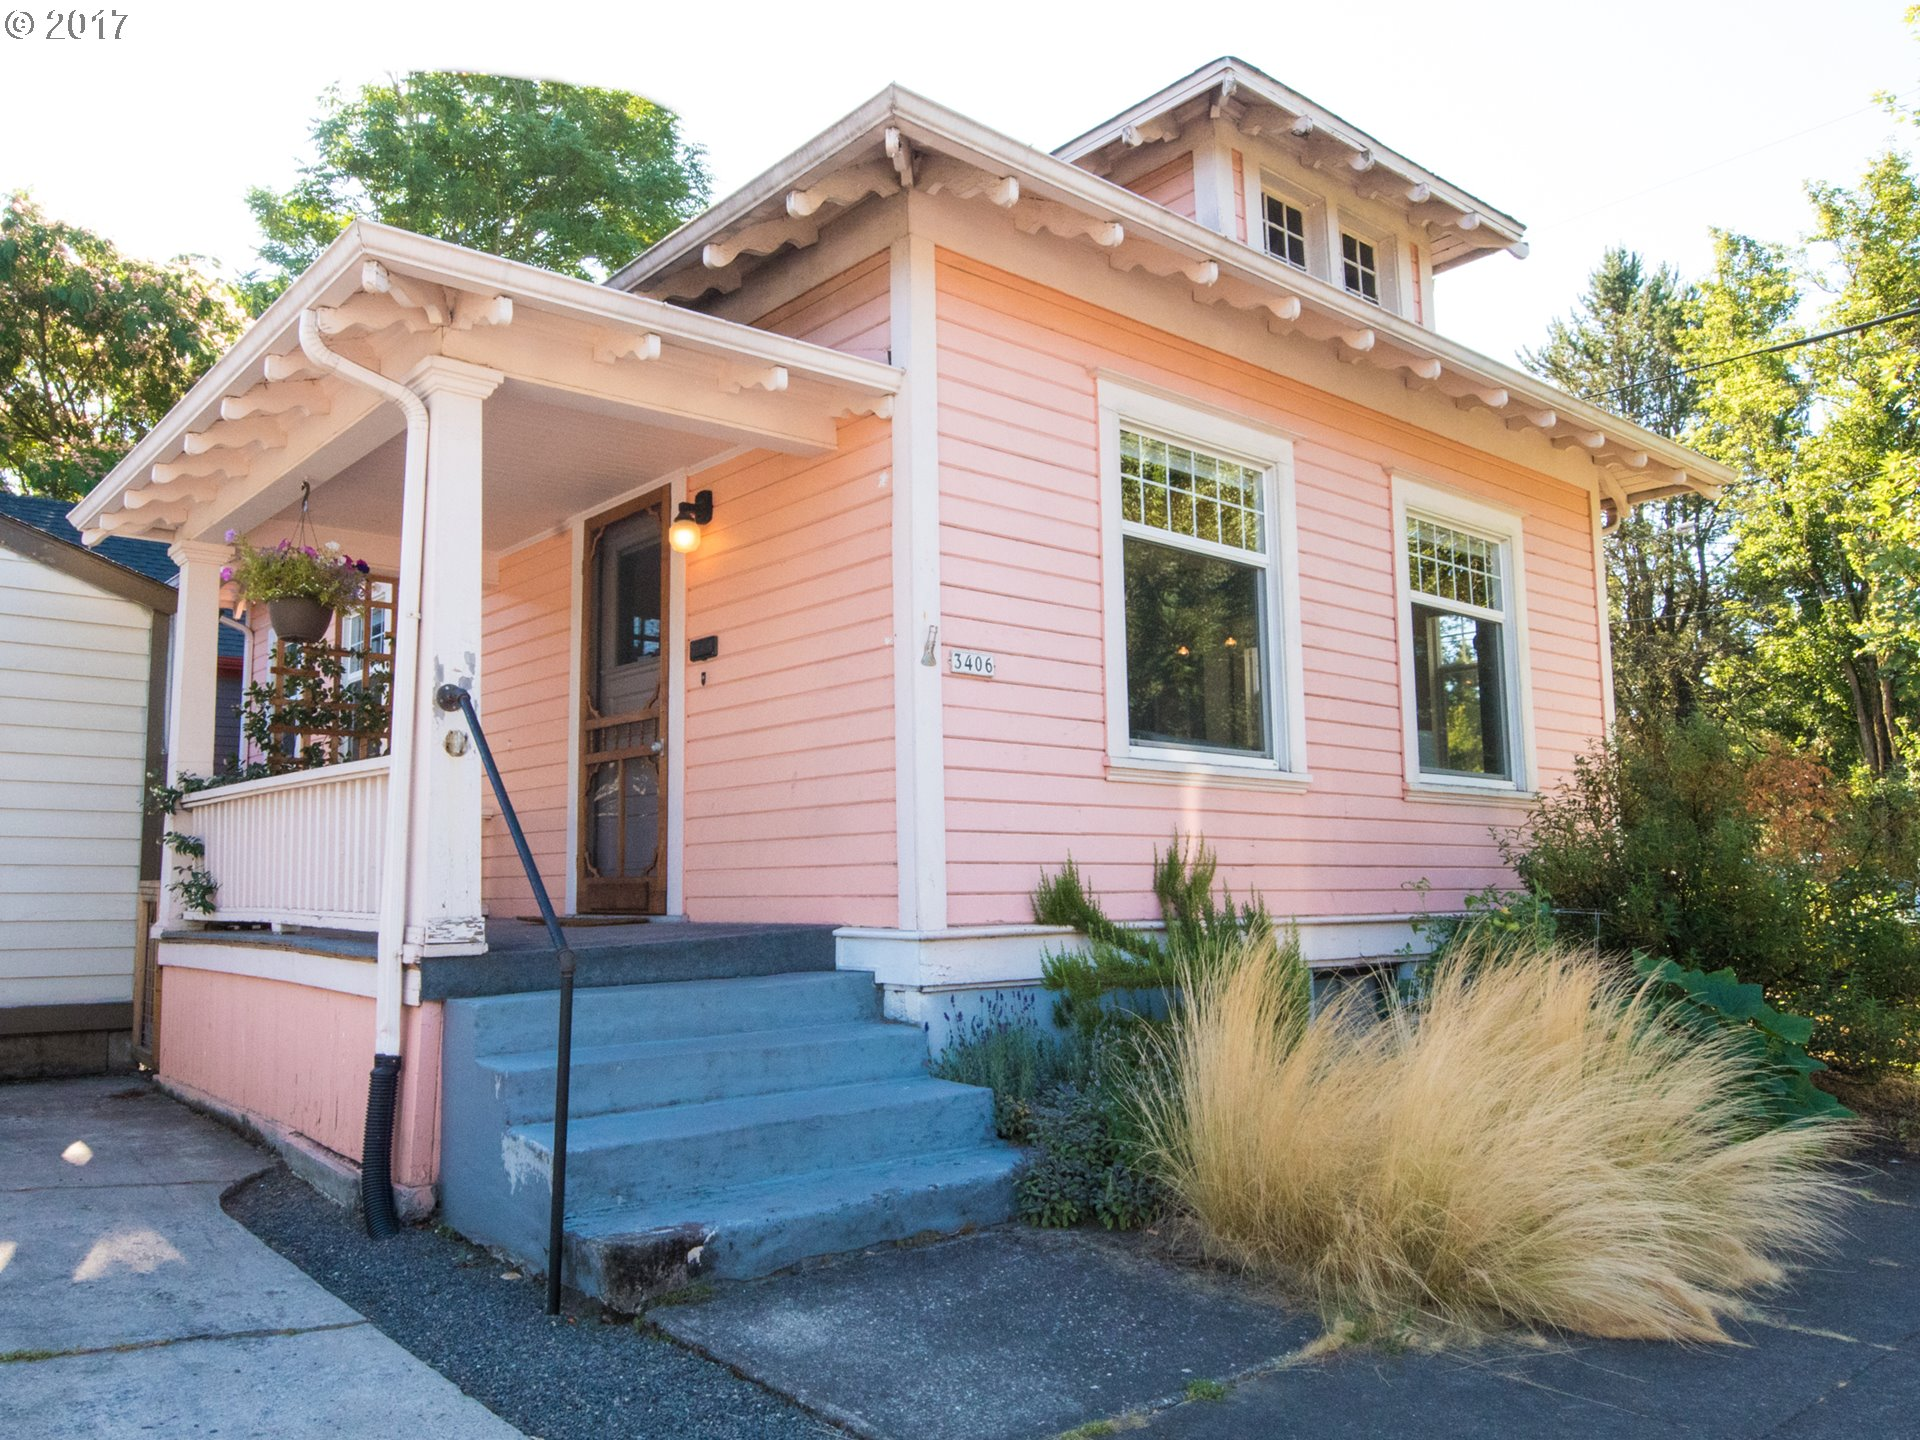 It doesn't get any better than this! Walk to everything Portland has to offer on North Williams: restaurants, bike routes, shopping, FUN! Charming bungalow flooded in natural light, on corner lot, remodeled with hi end finishes in bathroom & radiant floor heat! Room to grow with hi ceilings in the basement and an exterior door, if you want an ADU. There's even a garage for your toys; what are you waiting for?